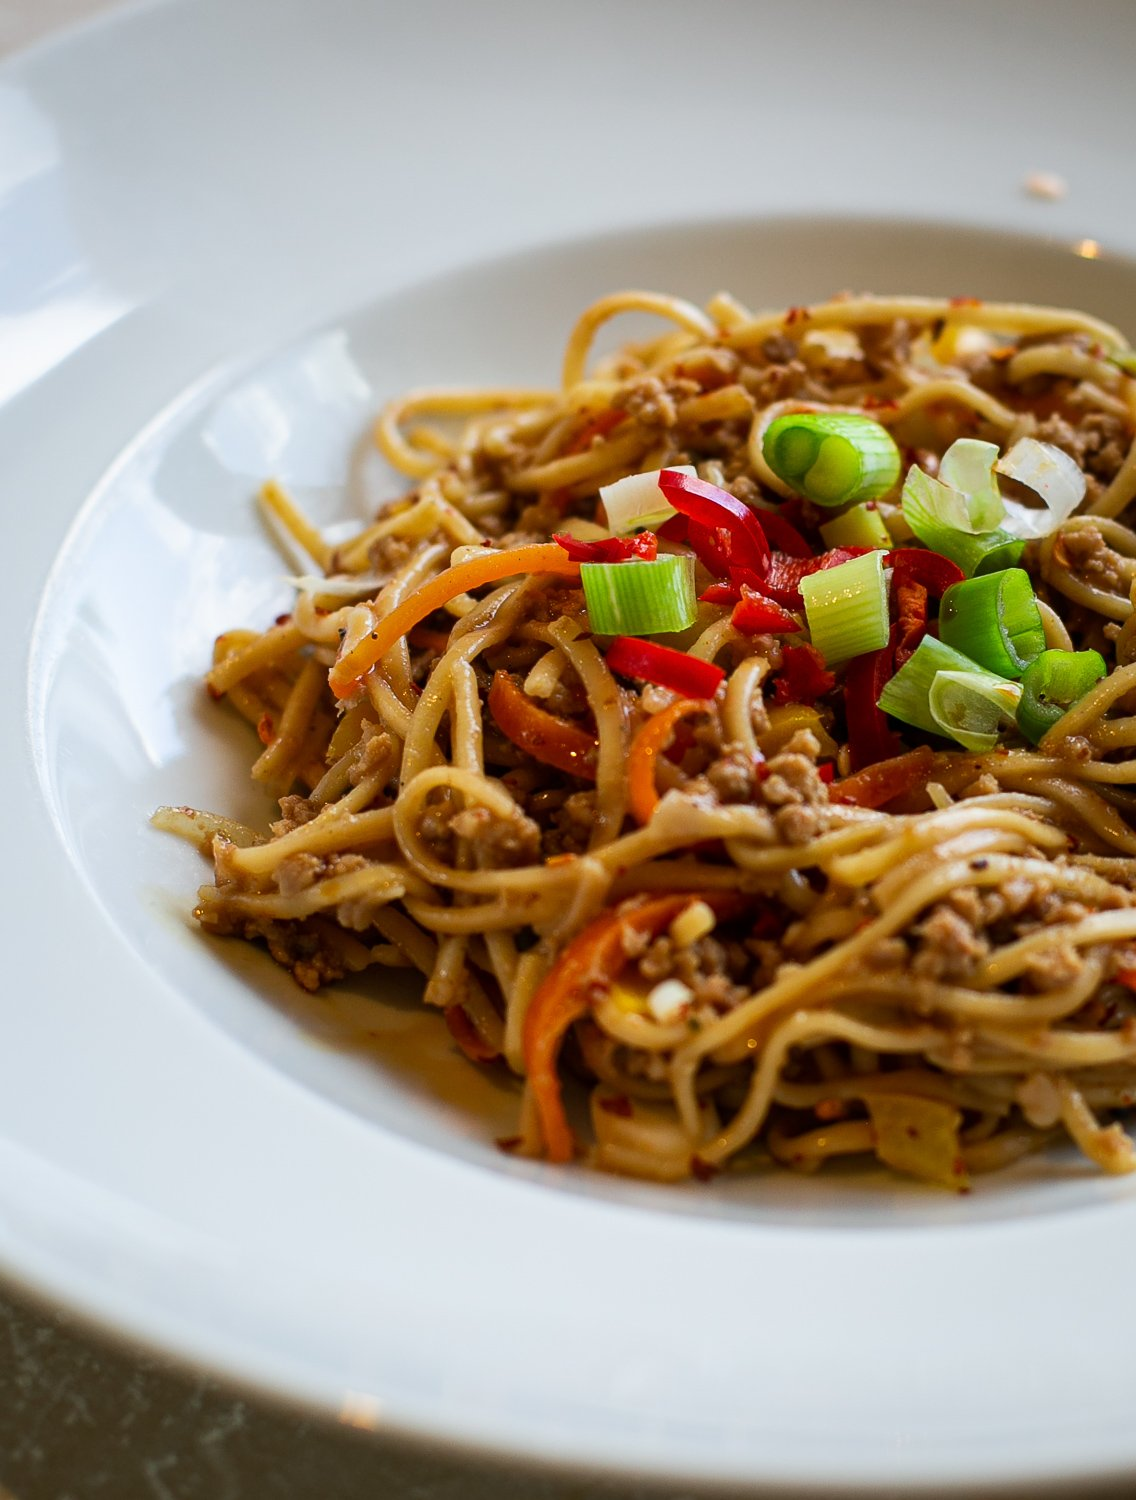 Chilli Pork Noodles with Peanut Sauce served in a bowl with spring onion